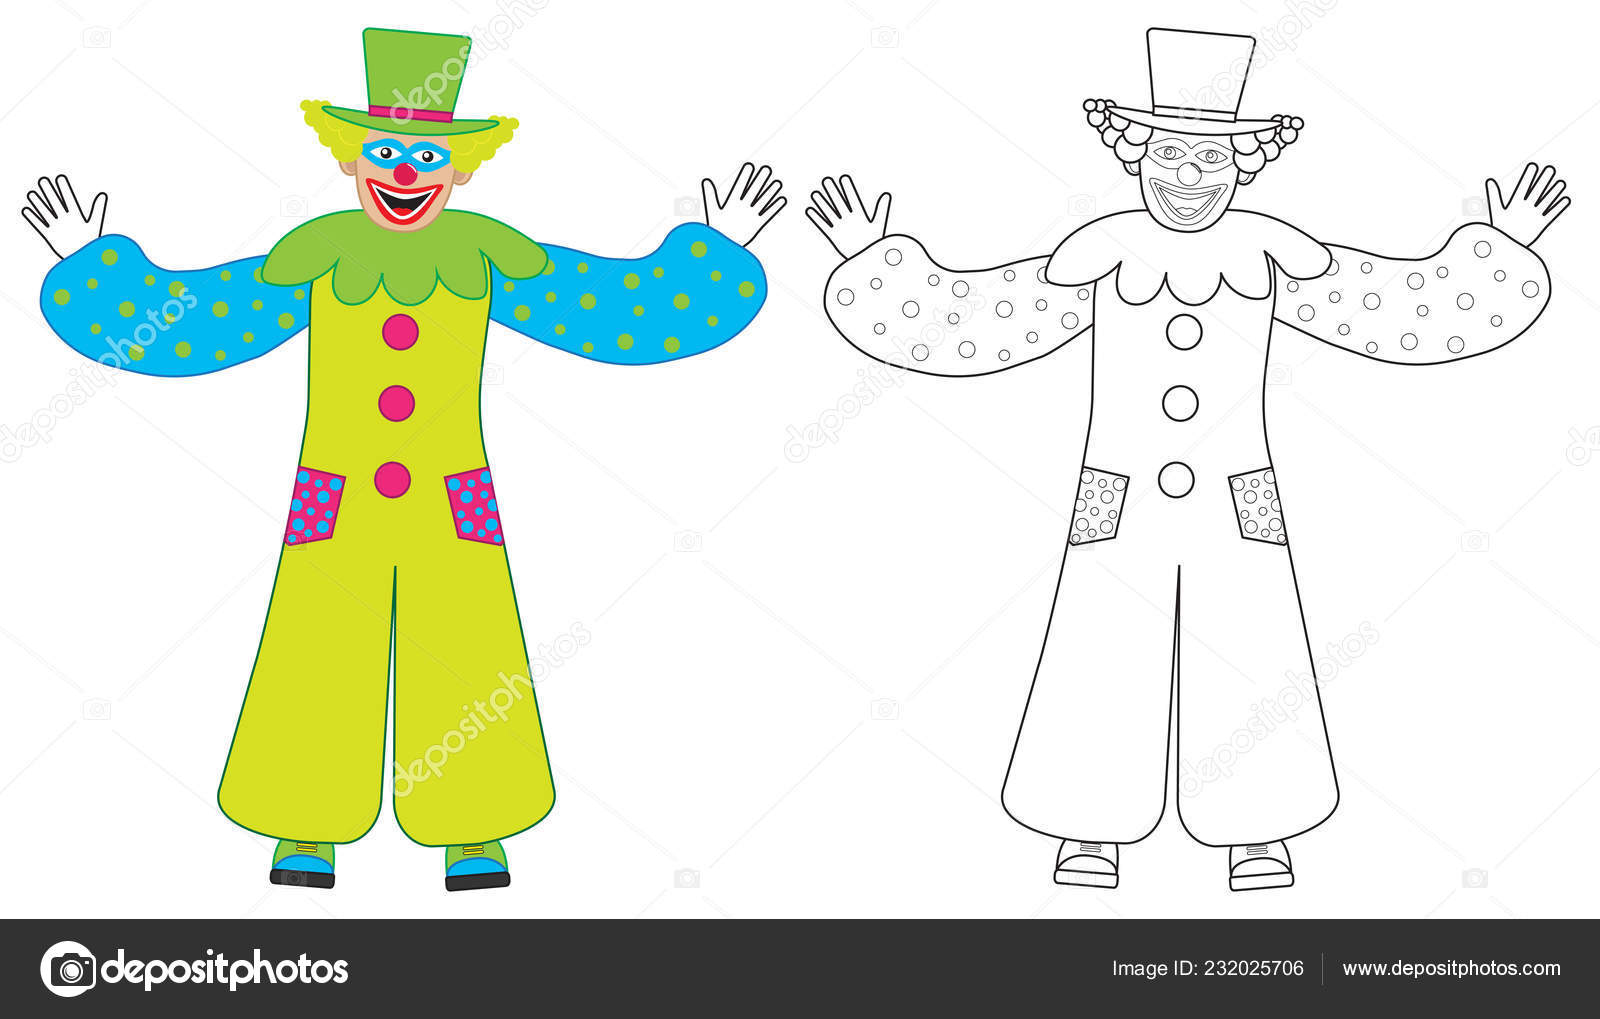 Cheerful Clown Welcomes Colorful Coloring Book Vector Illustration